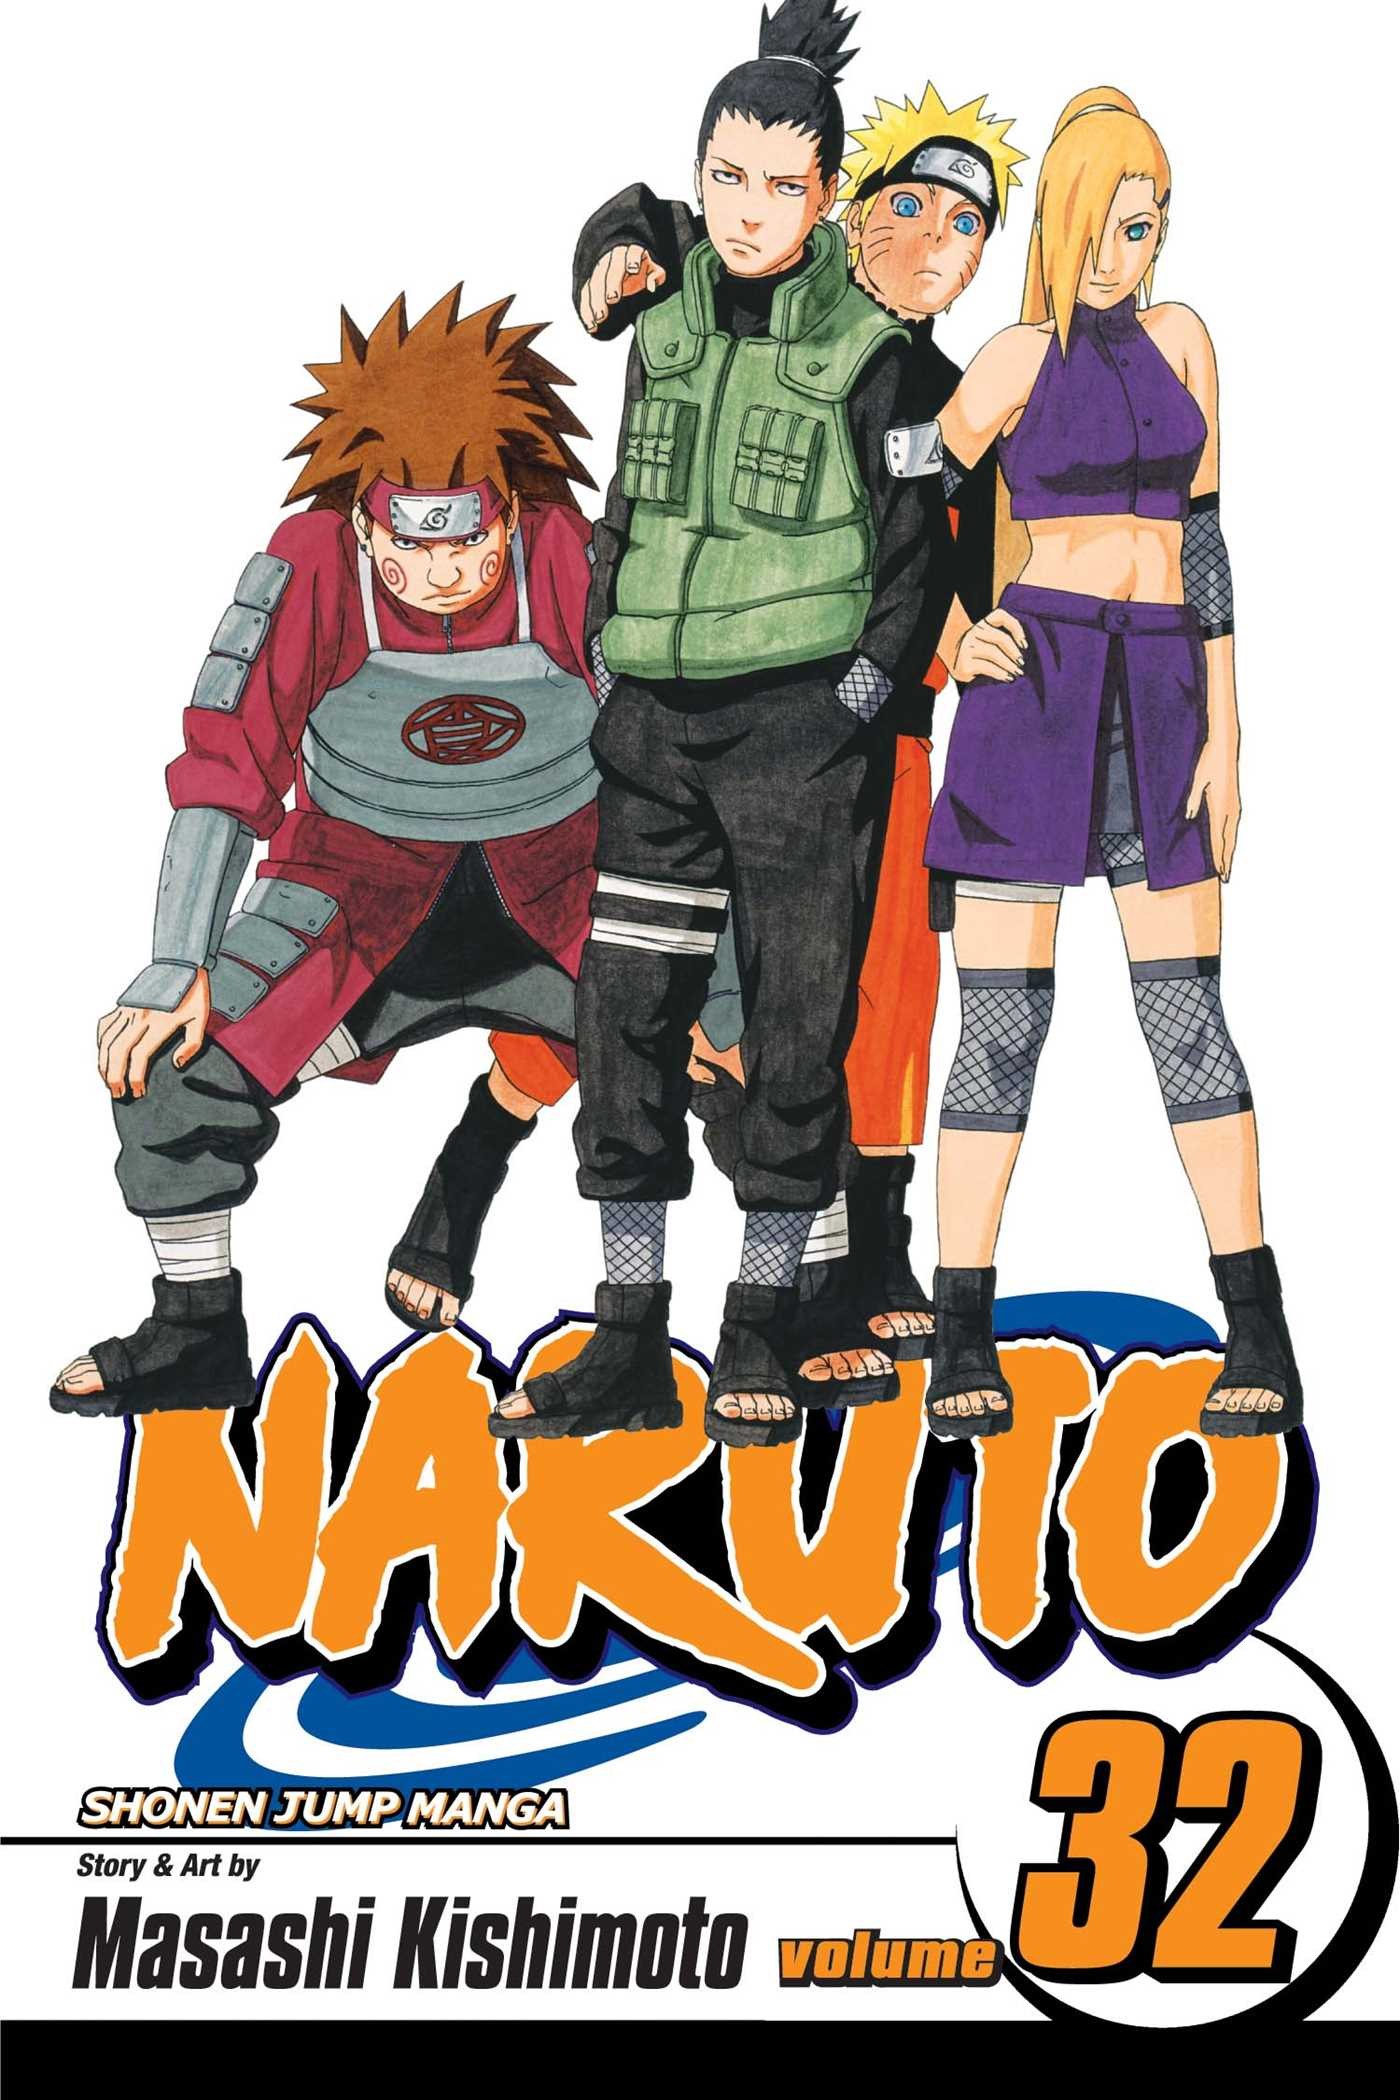 Naruto vol 32 9781421519449 hr